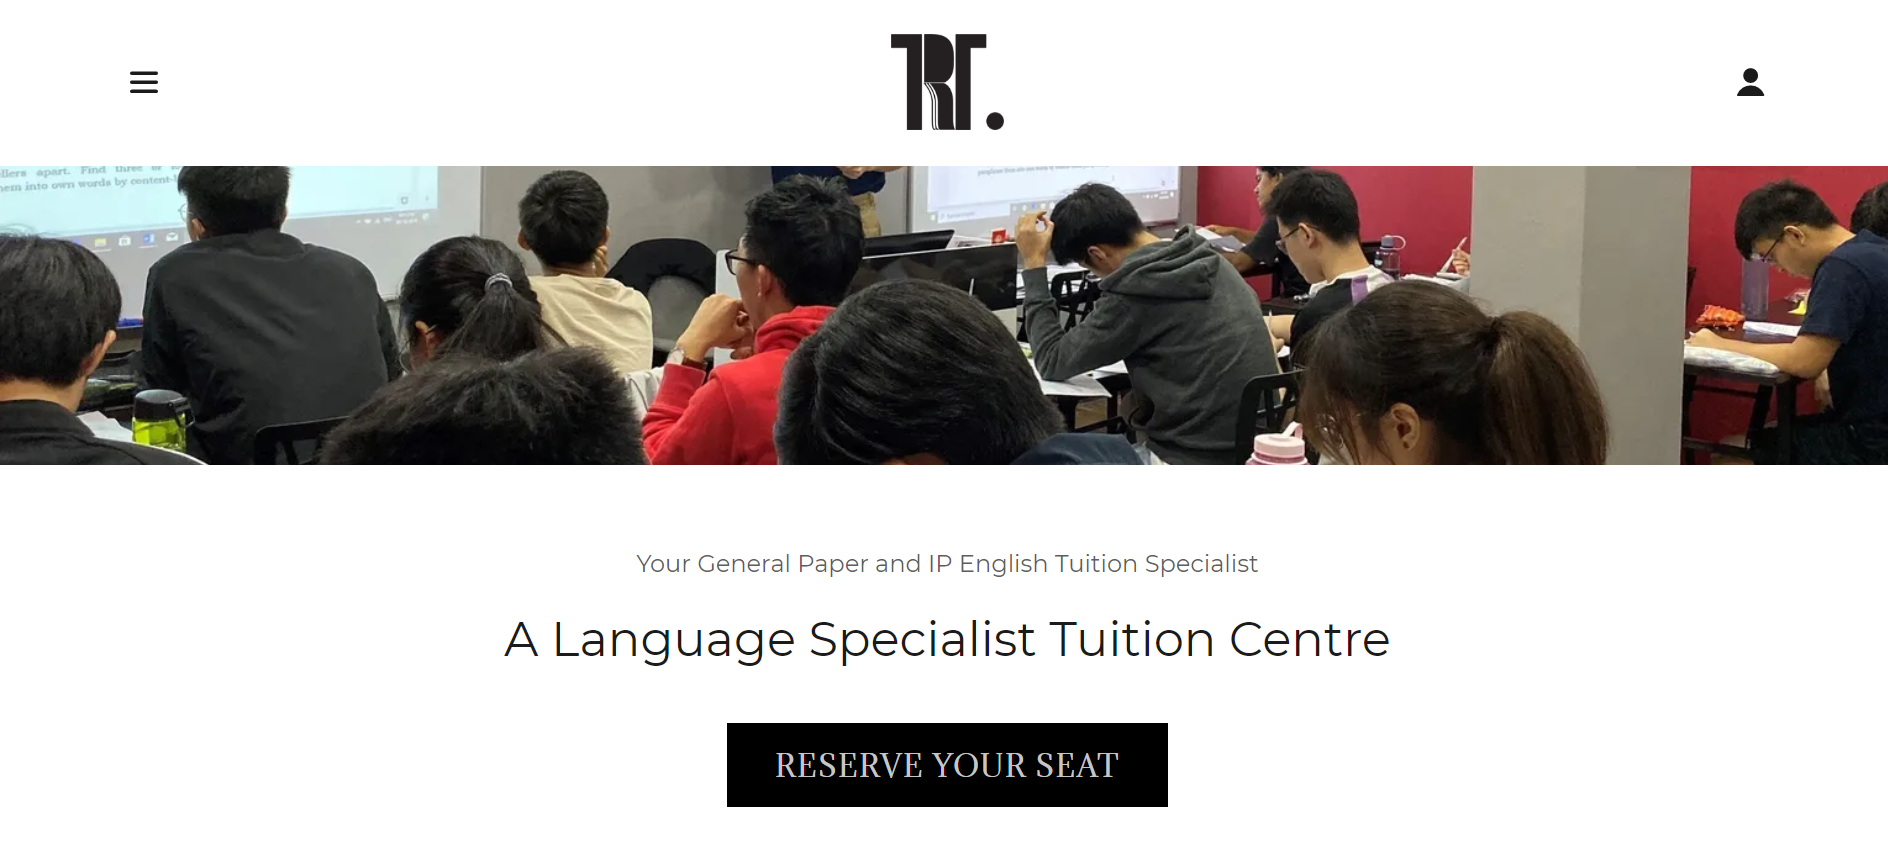 The Rational Thinking GP Tuition